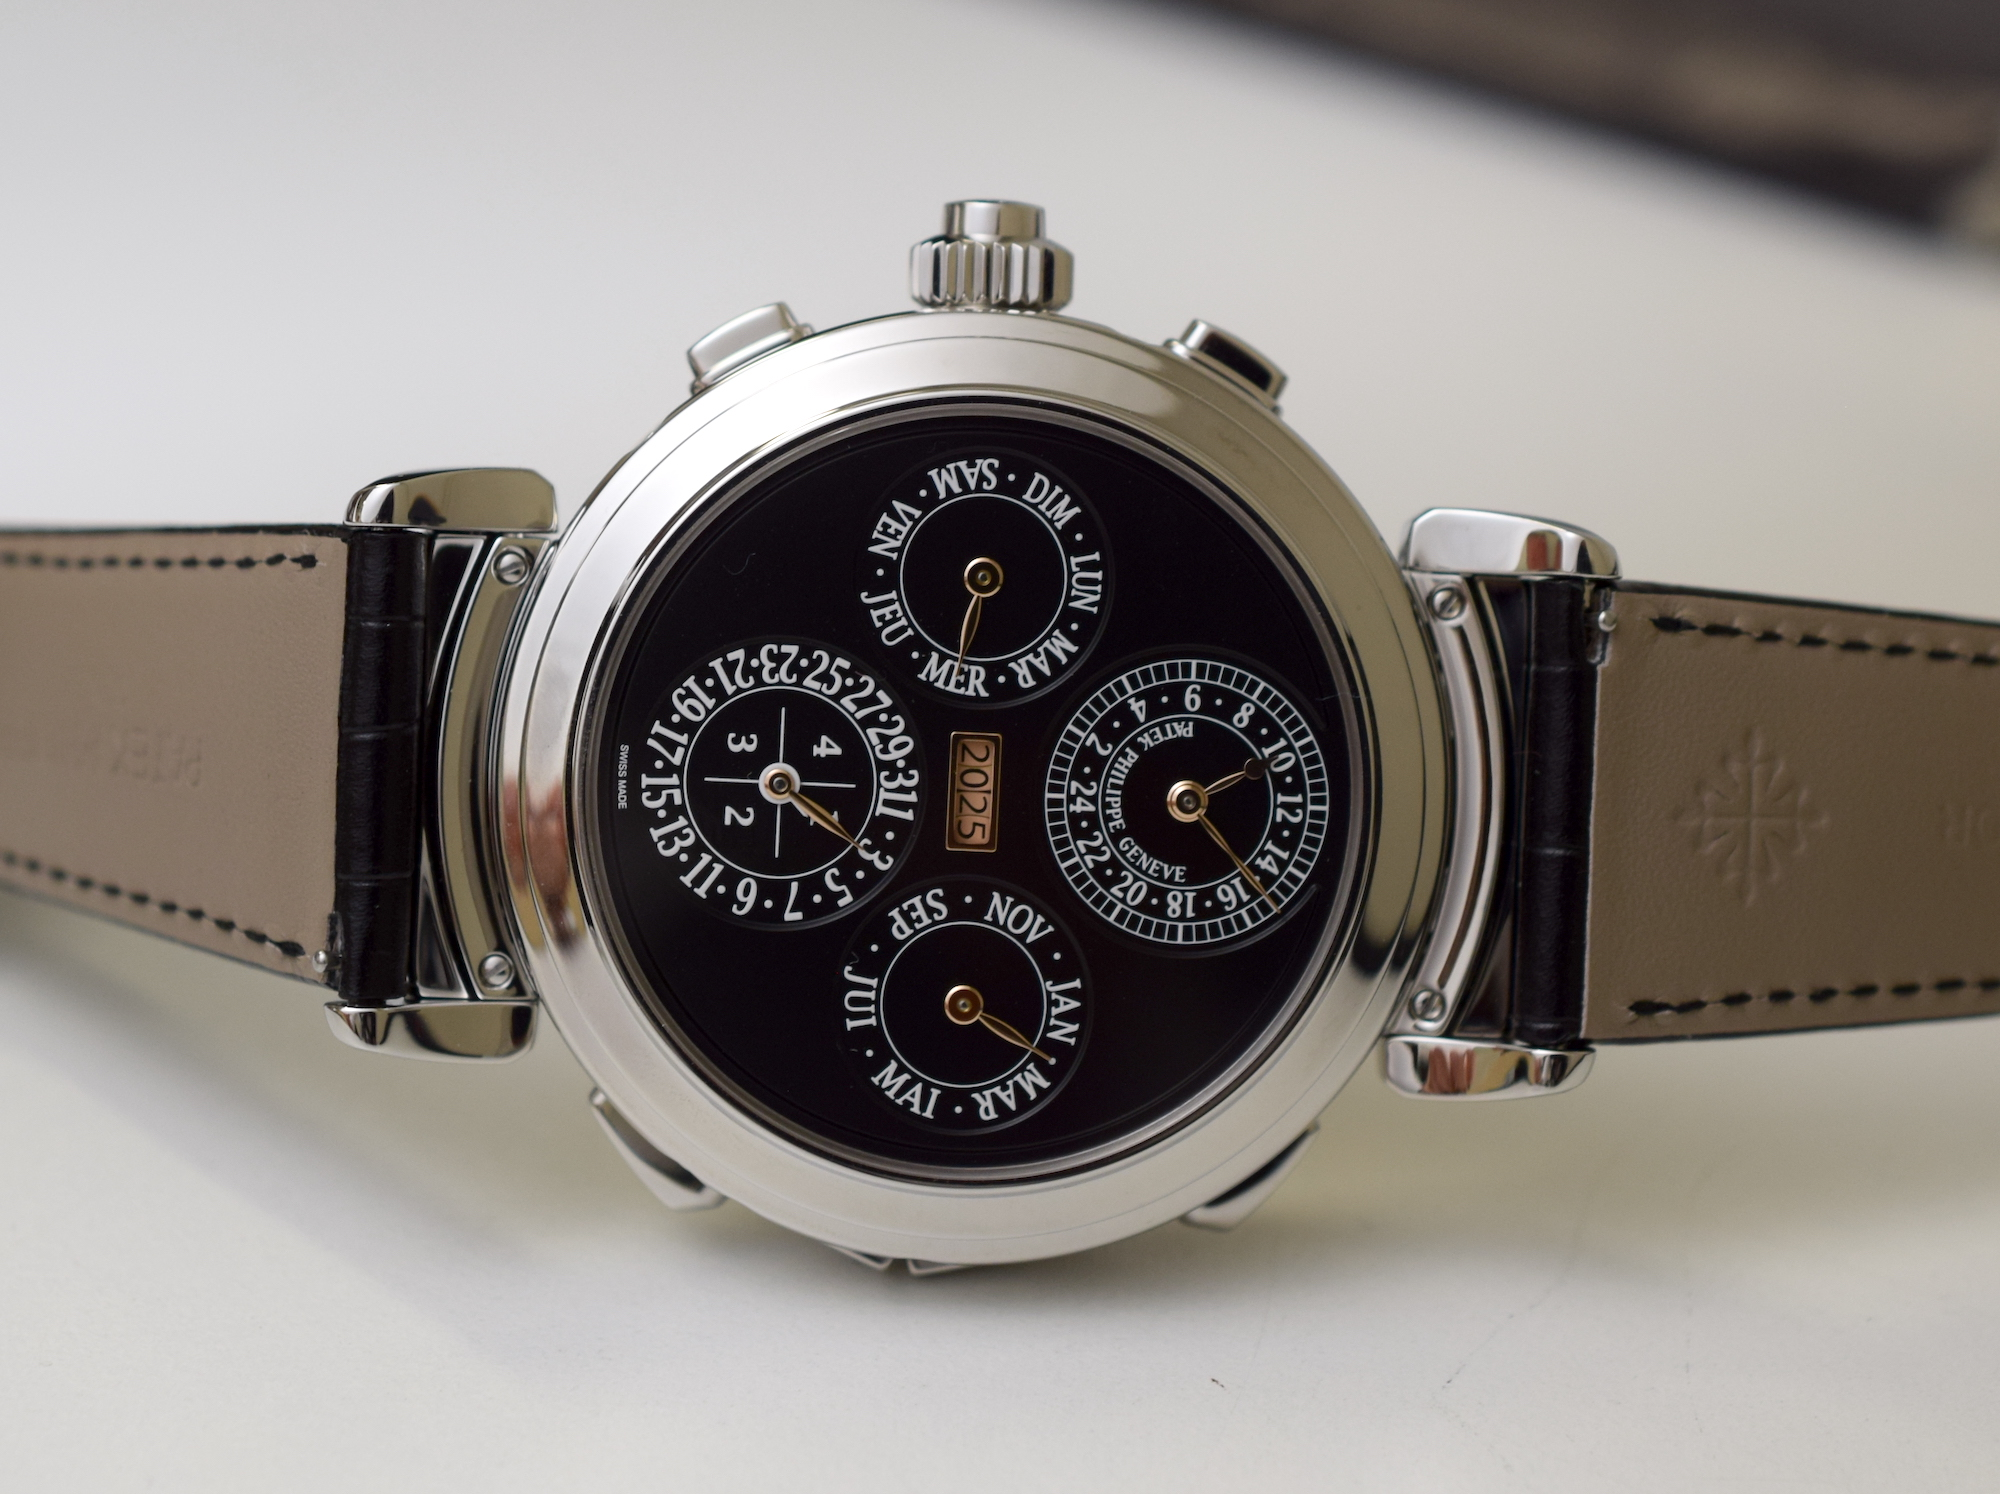 Patek Phillipe 6300A Steel Only Watch 2019 - Most Expensive Watch Ever Auctioned